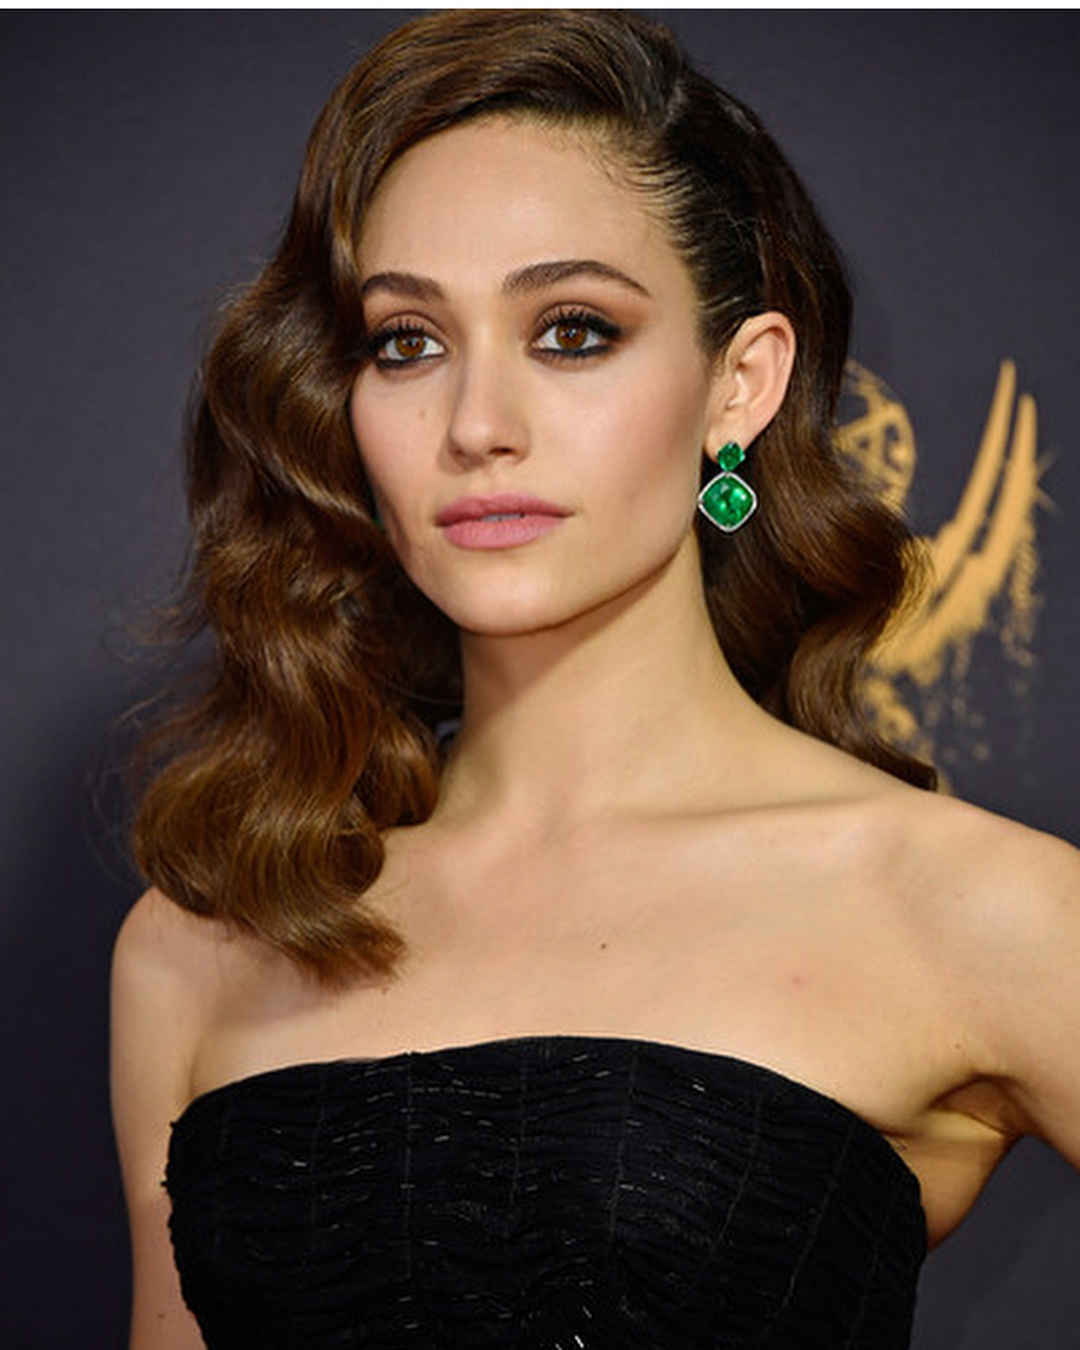 Emmy Rossum Biography, Wiki, Age, Net Worth, Height & Family